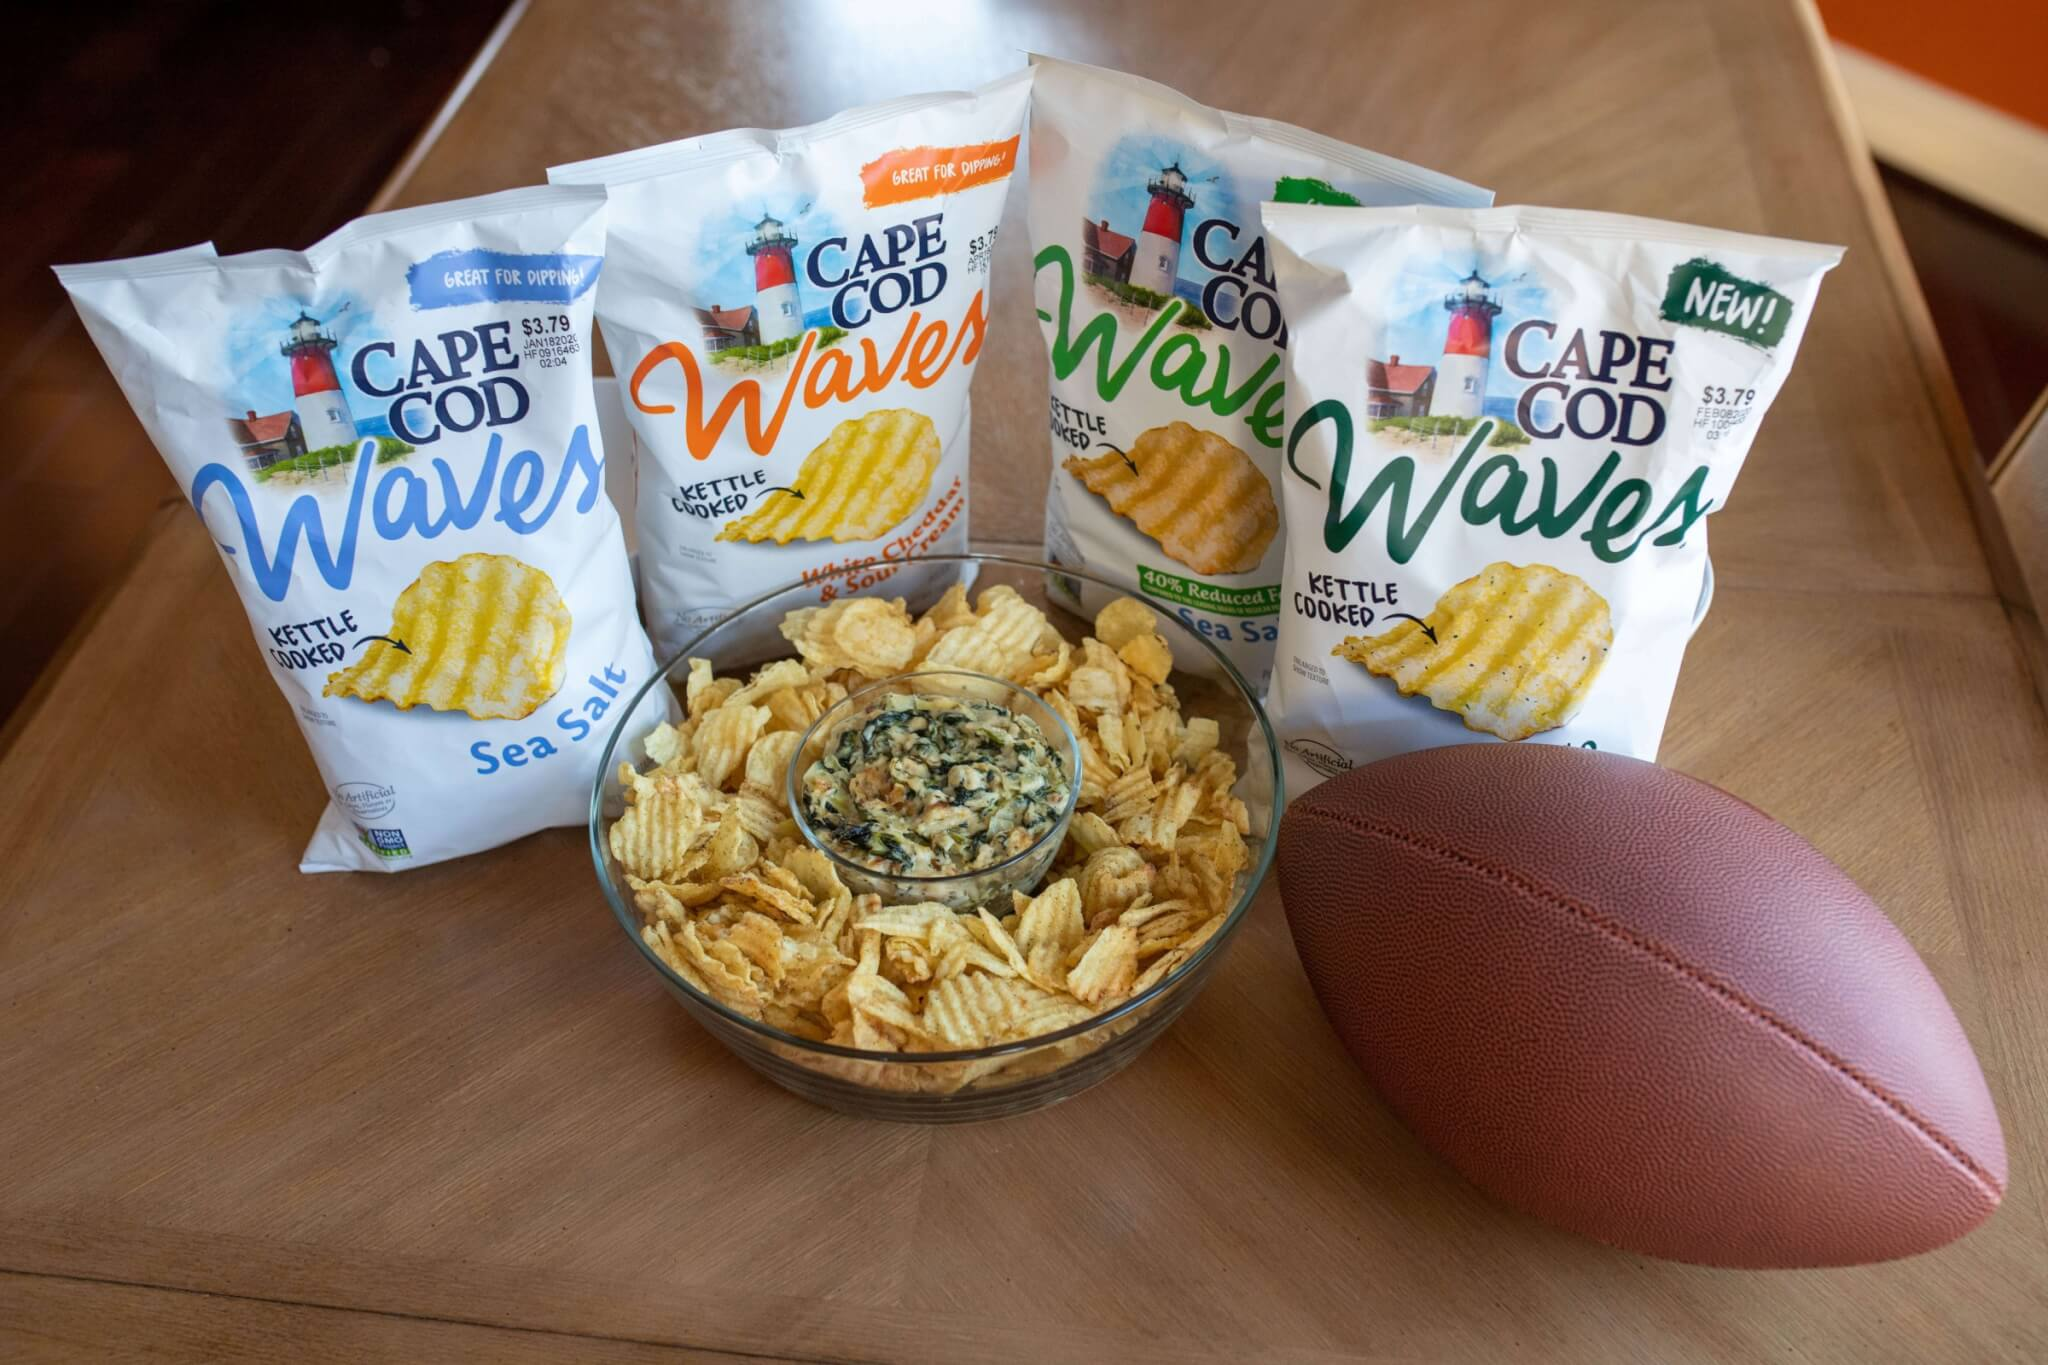 Cape Cod Chips, Cape Cod potato chips, Cape Cod Waves®Chips, best potato chips, kettle cooked chips, crunchy potato chips, @CapeCodChips, Cape Cod Chips Waves®, spinach artichoke dip recipe